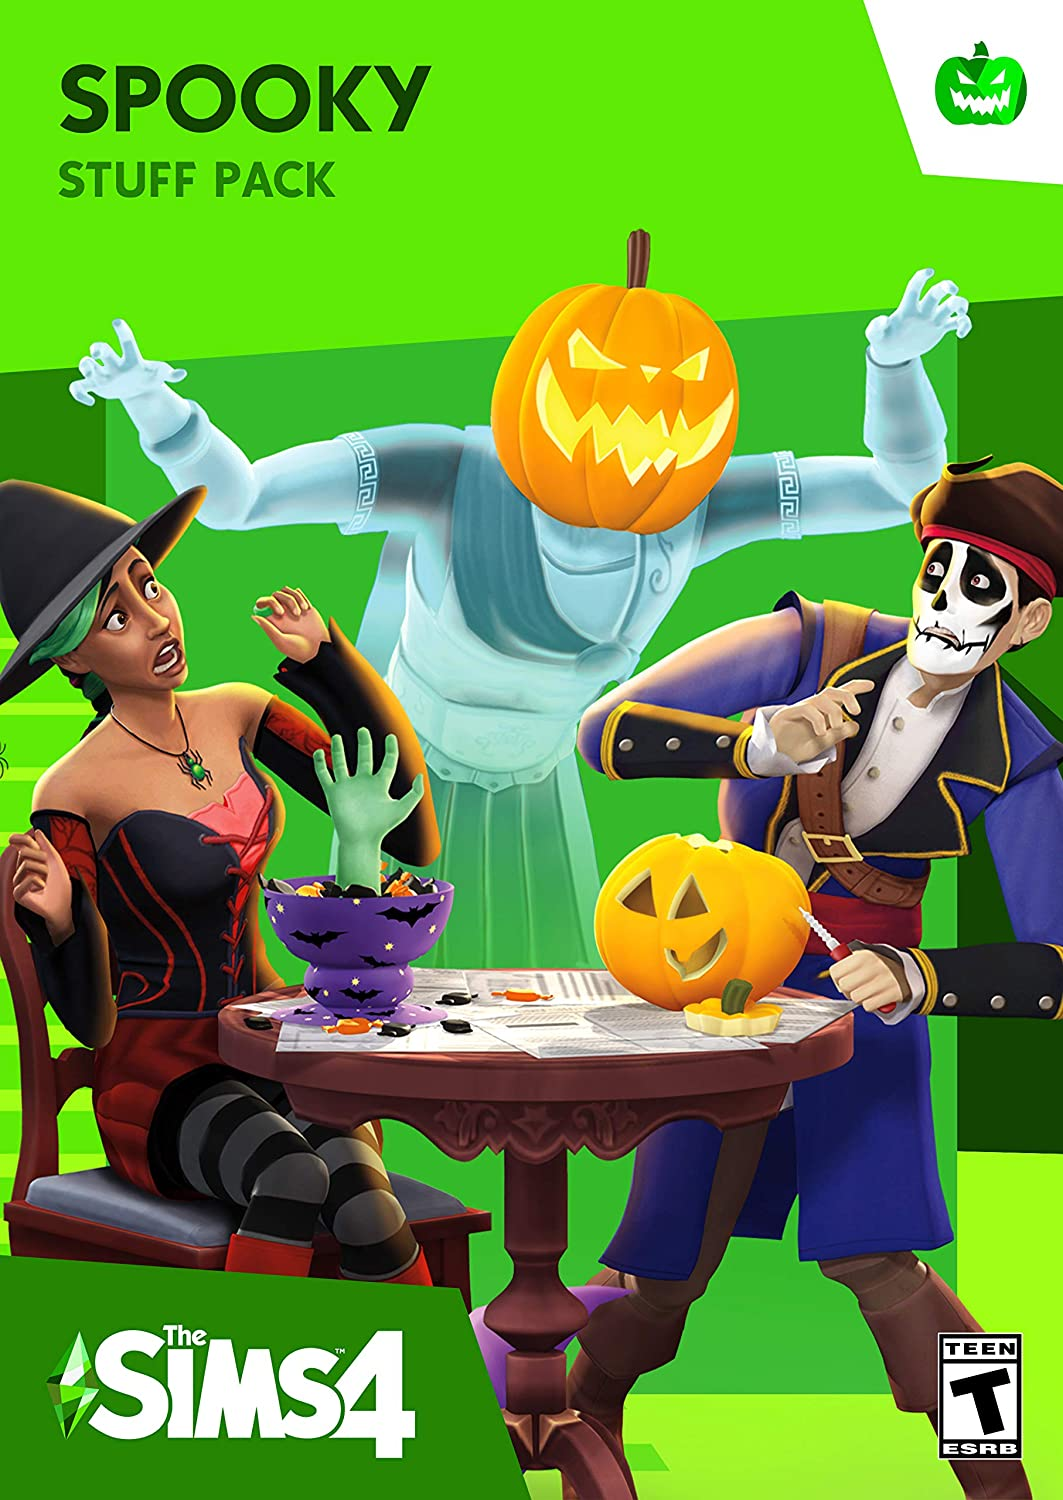 The Sims 4 - Spooky Stuff Pack [Instant Access]